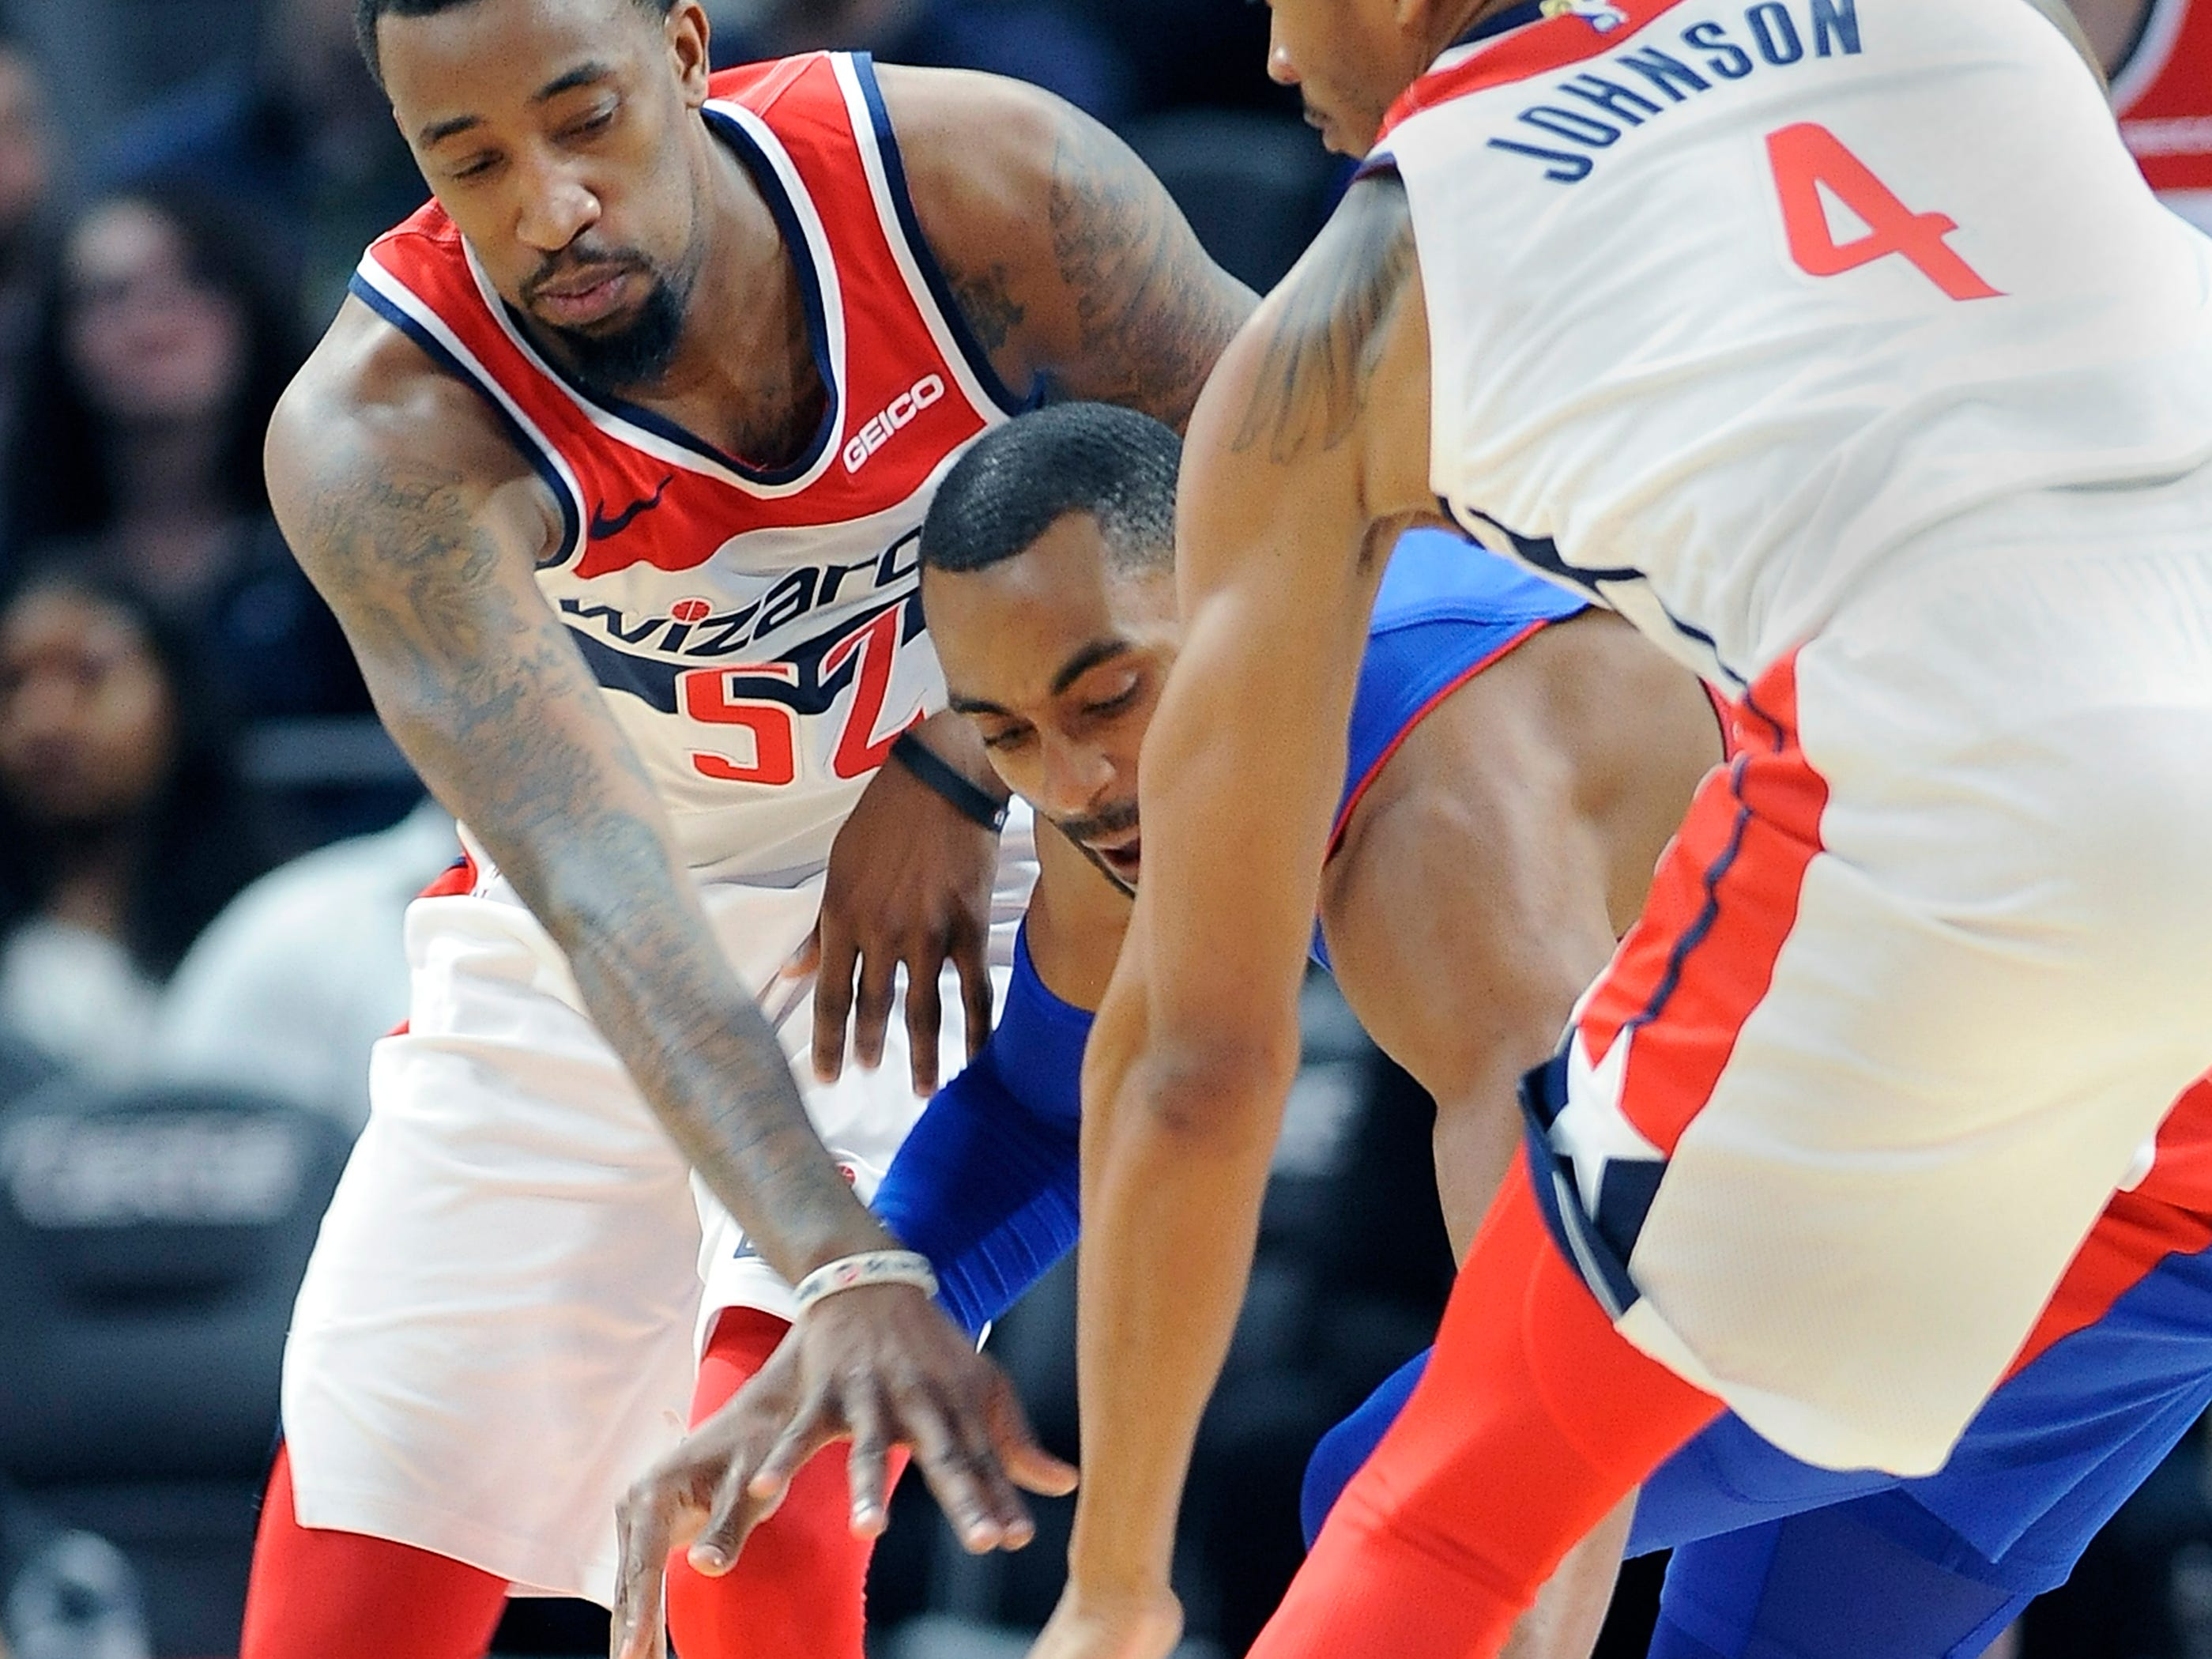 Wizards' l-r, Jordan McRae and Wesley Johnson double team Pistons' Wayne Ellington in the fourth quarter.